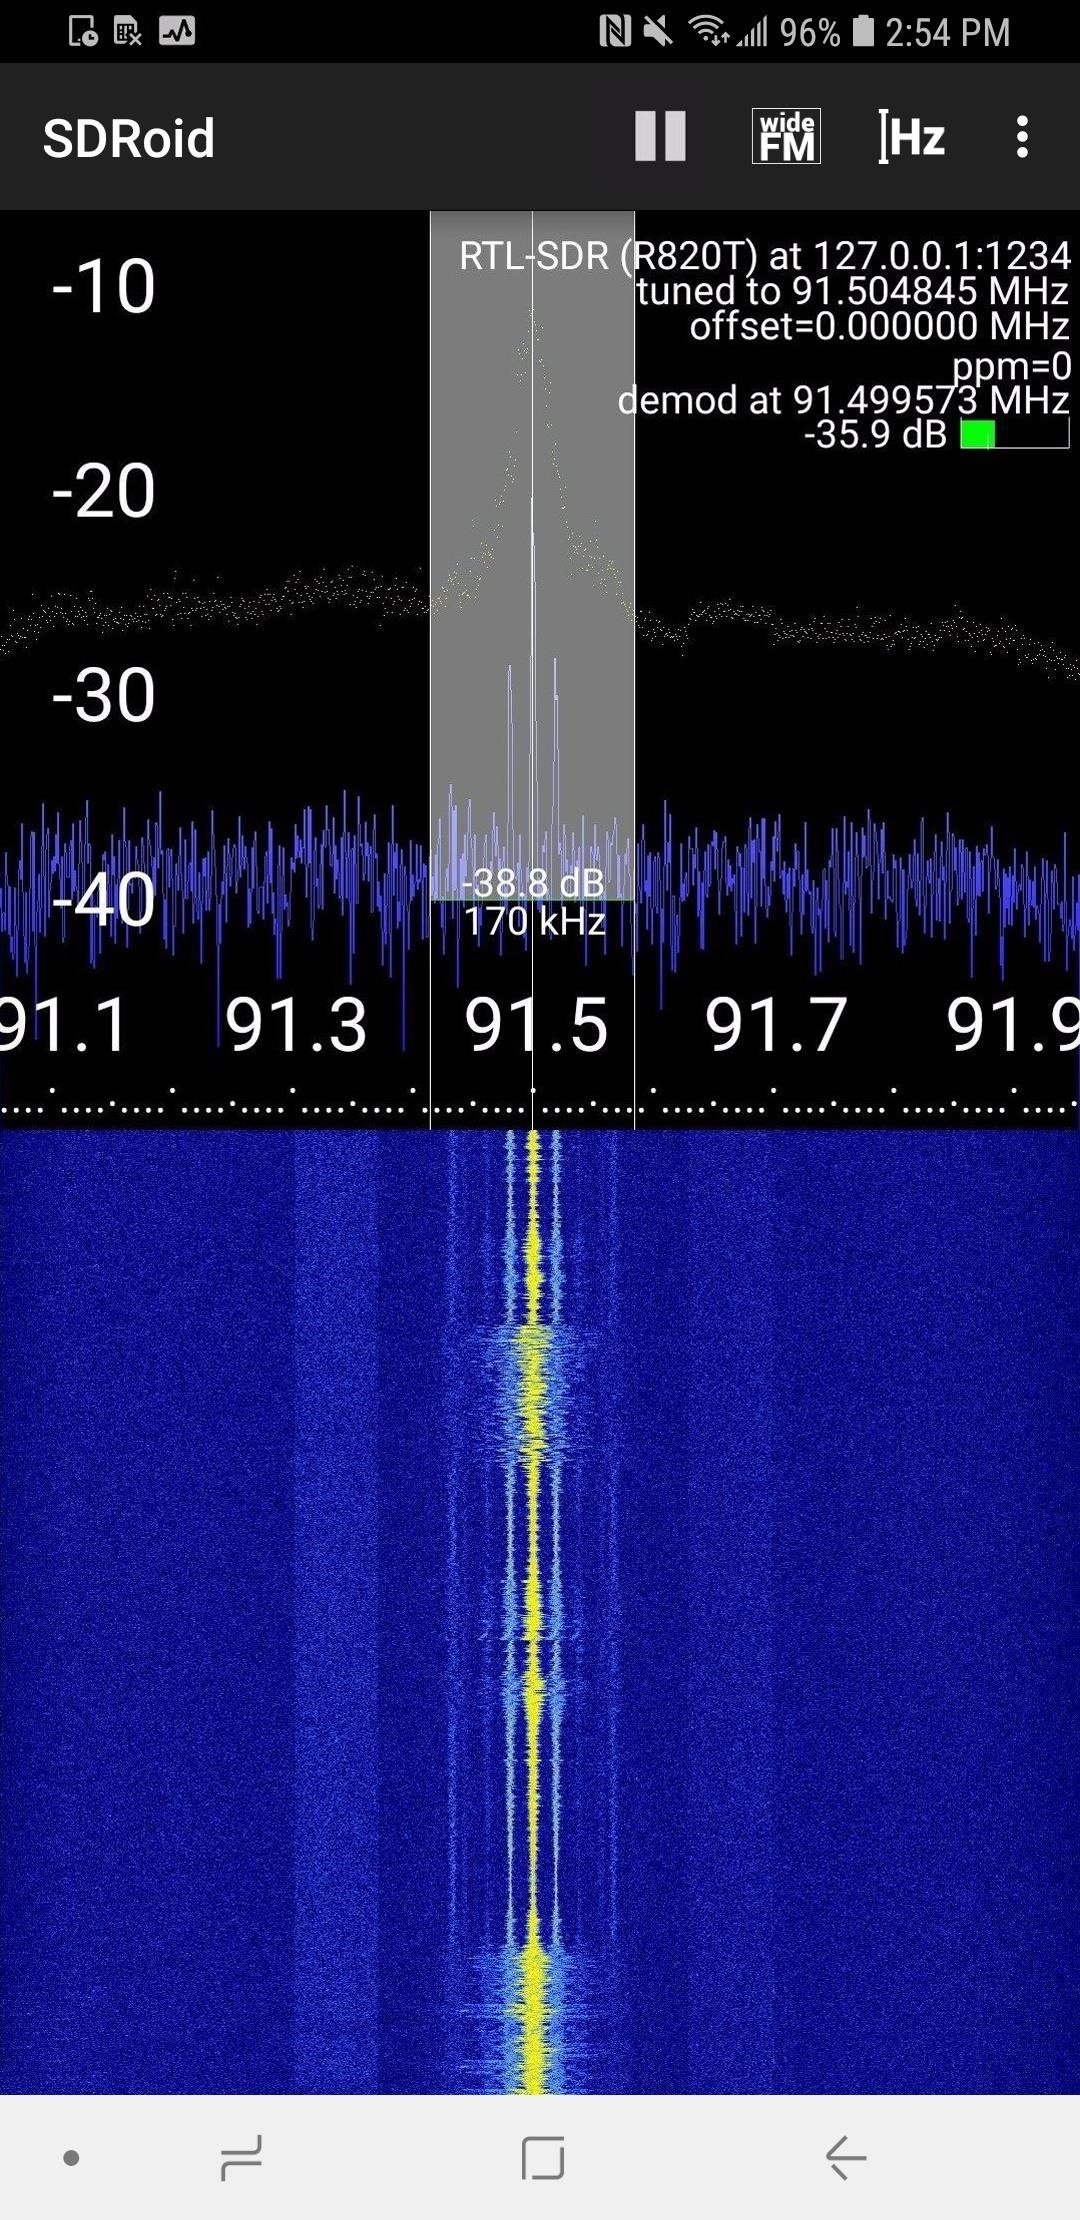 How to Listen to Radio Broadcasts with an RTL SDR Dongle and OTG Adapter